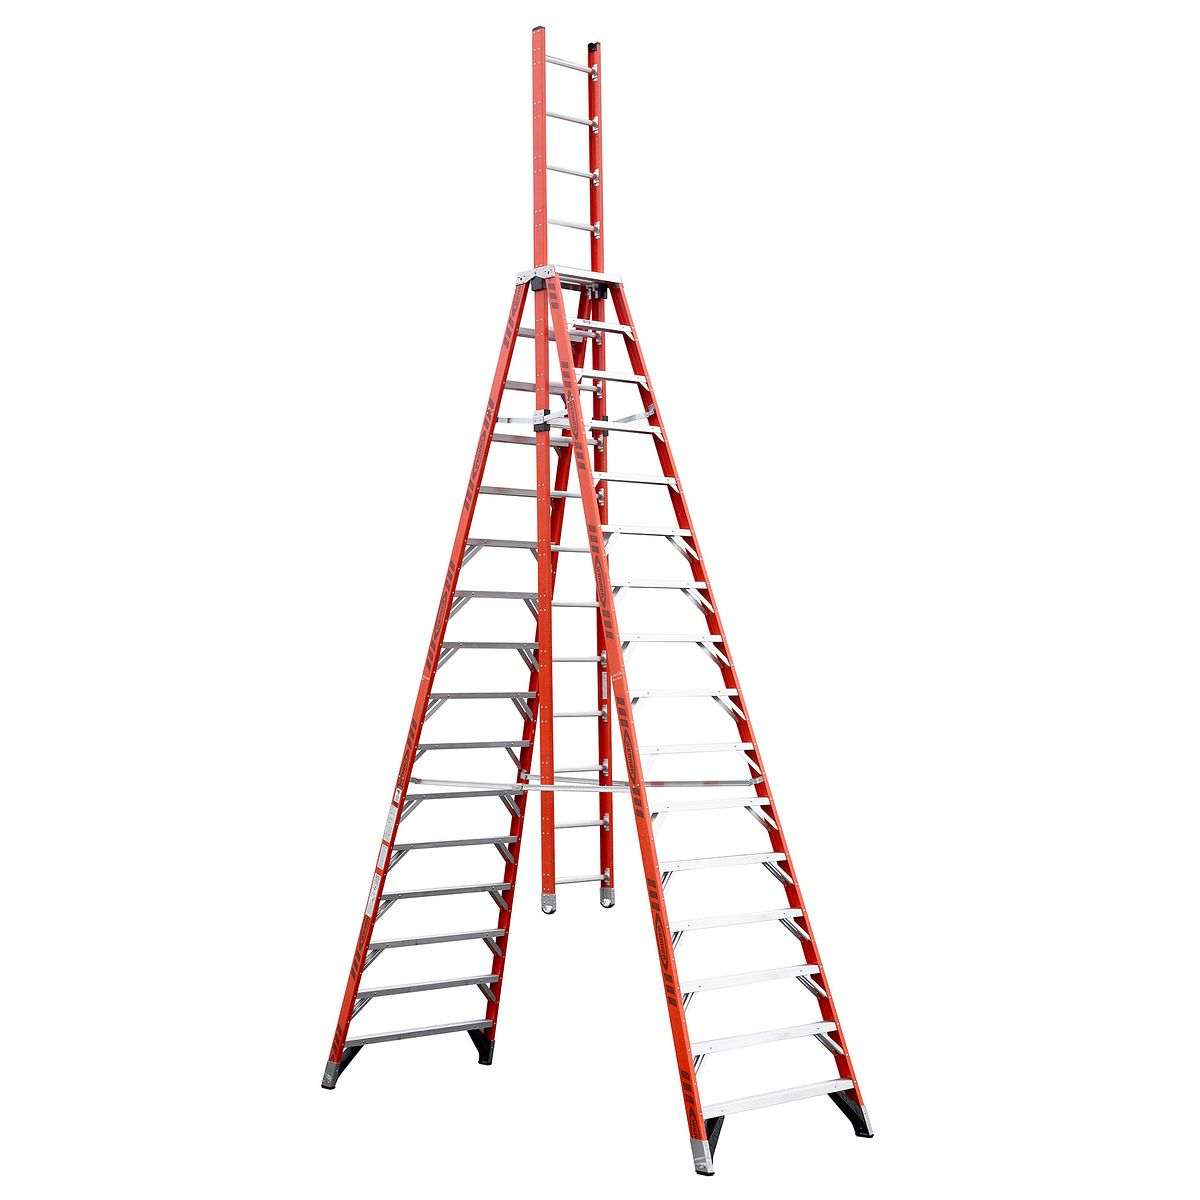 E7416 | Step Ladders | Werner US